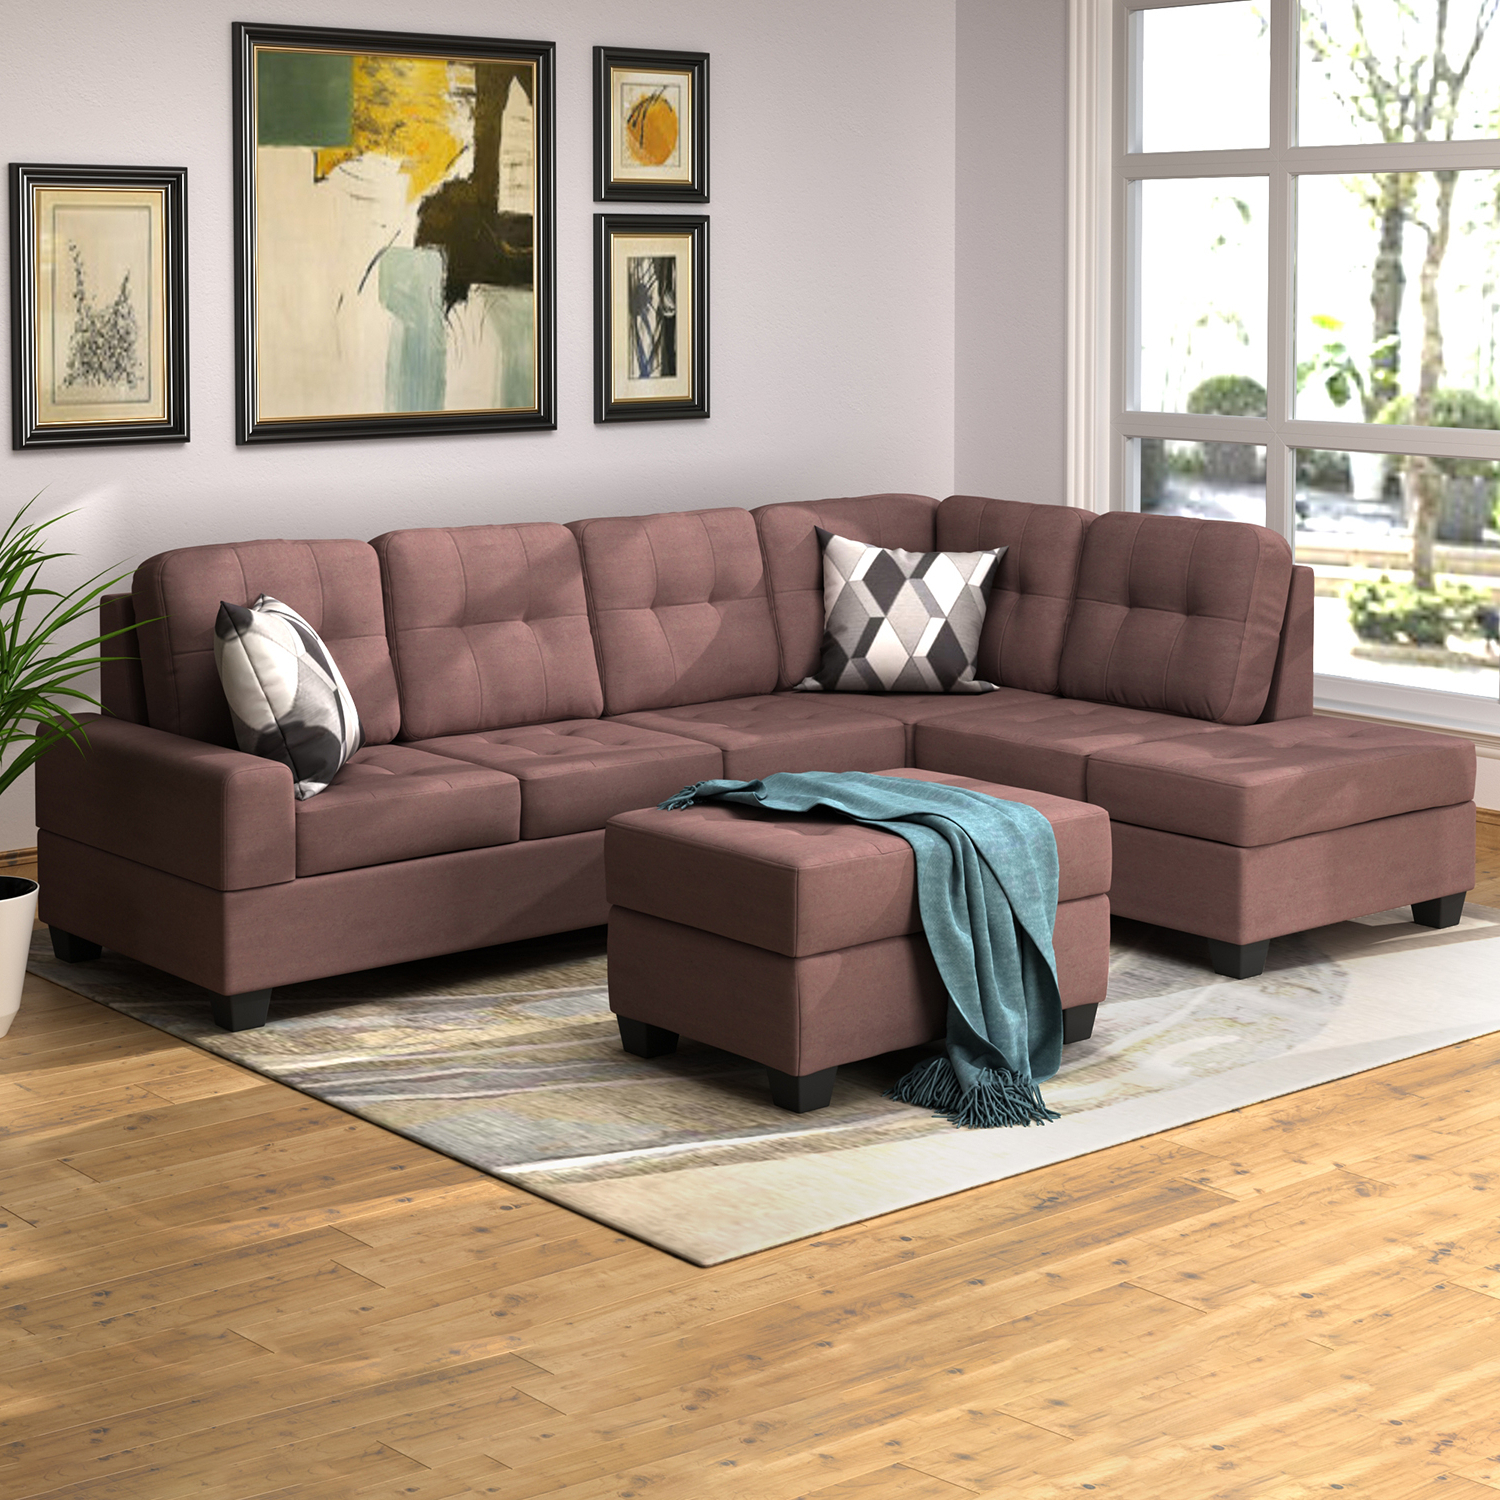 Most Current Copenhagen Reversible Small Space Sectional Sofas With Storage Within 3 Piece Sectional Sofa Microfiber With Reversible Chaise (View 4 of 20)